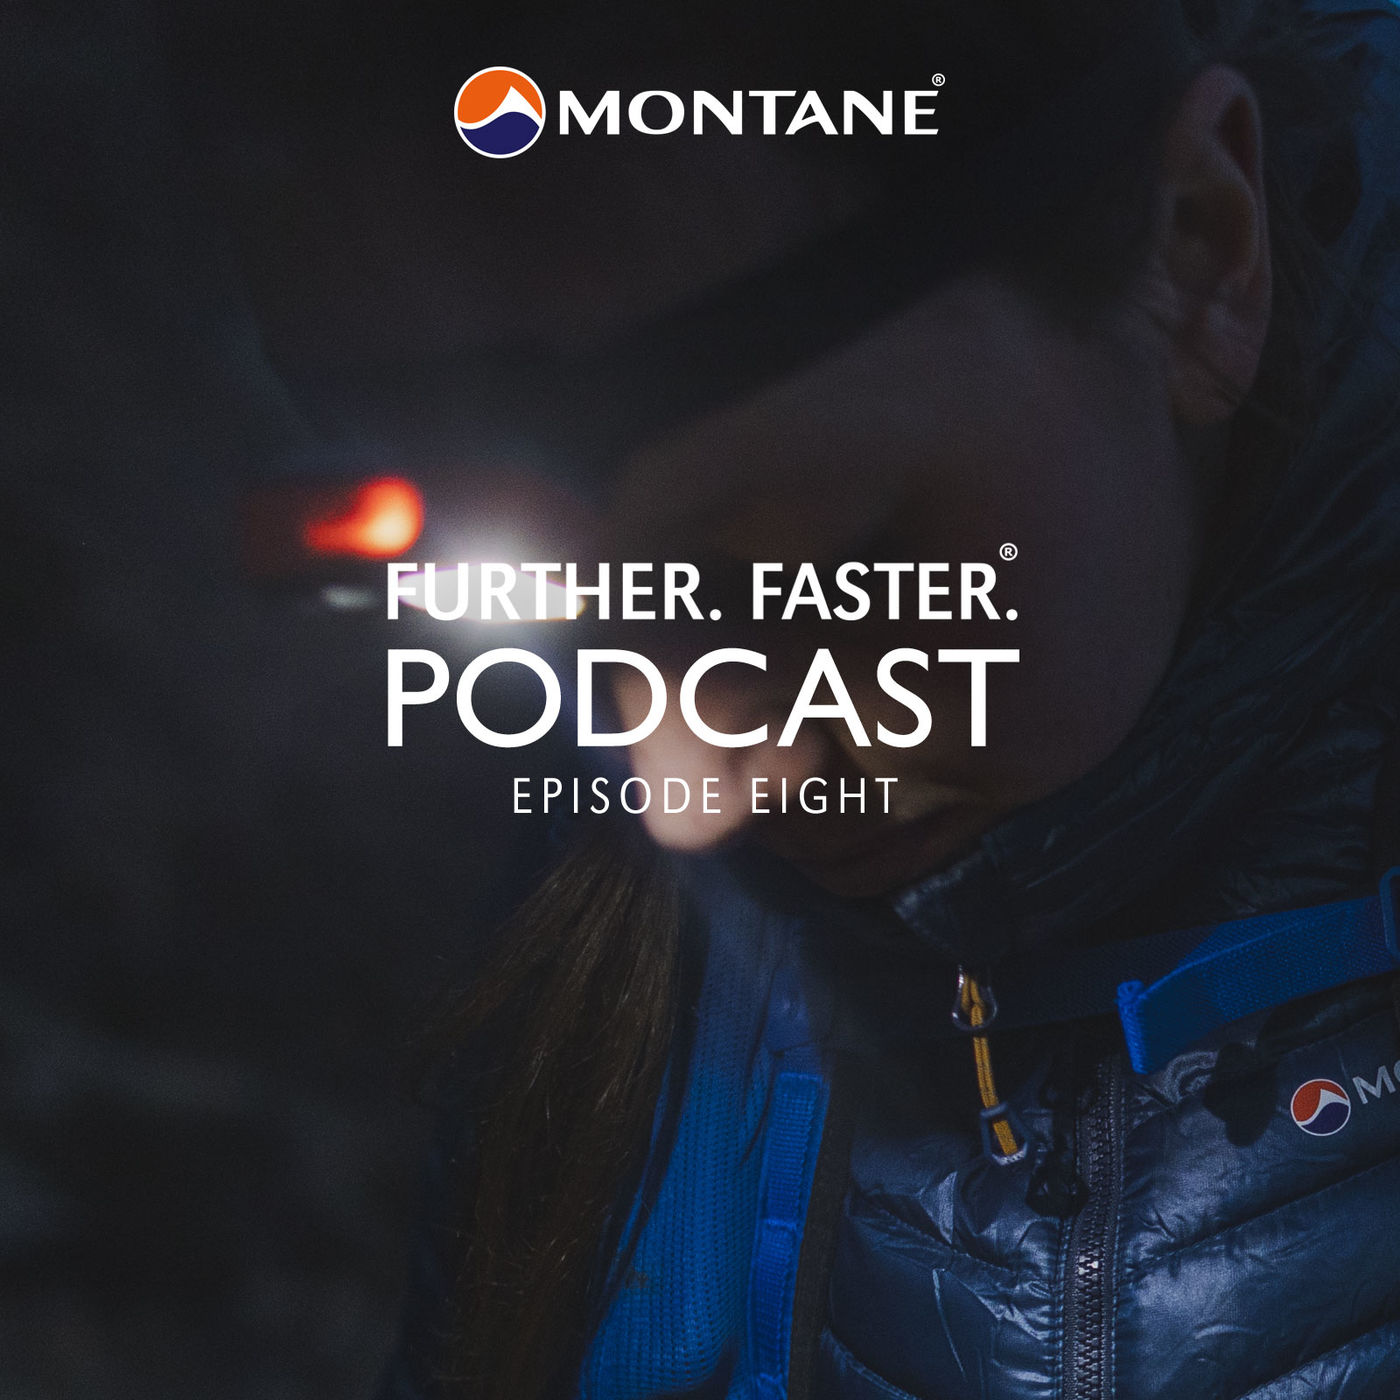 Further. Faster. Podcast Ep8 (Solo endurance athlete Jenny Tough)